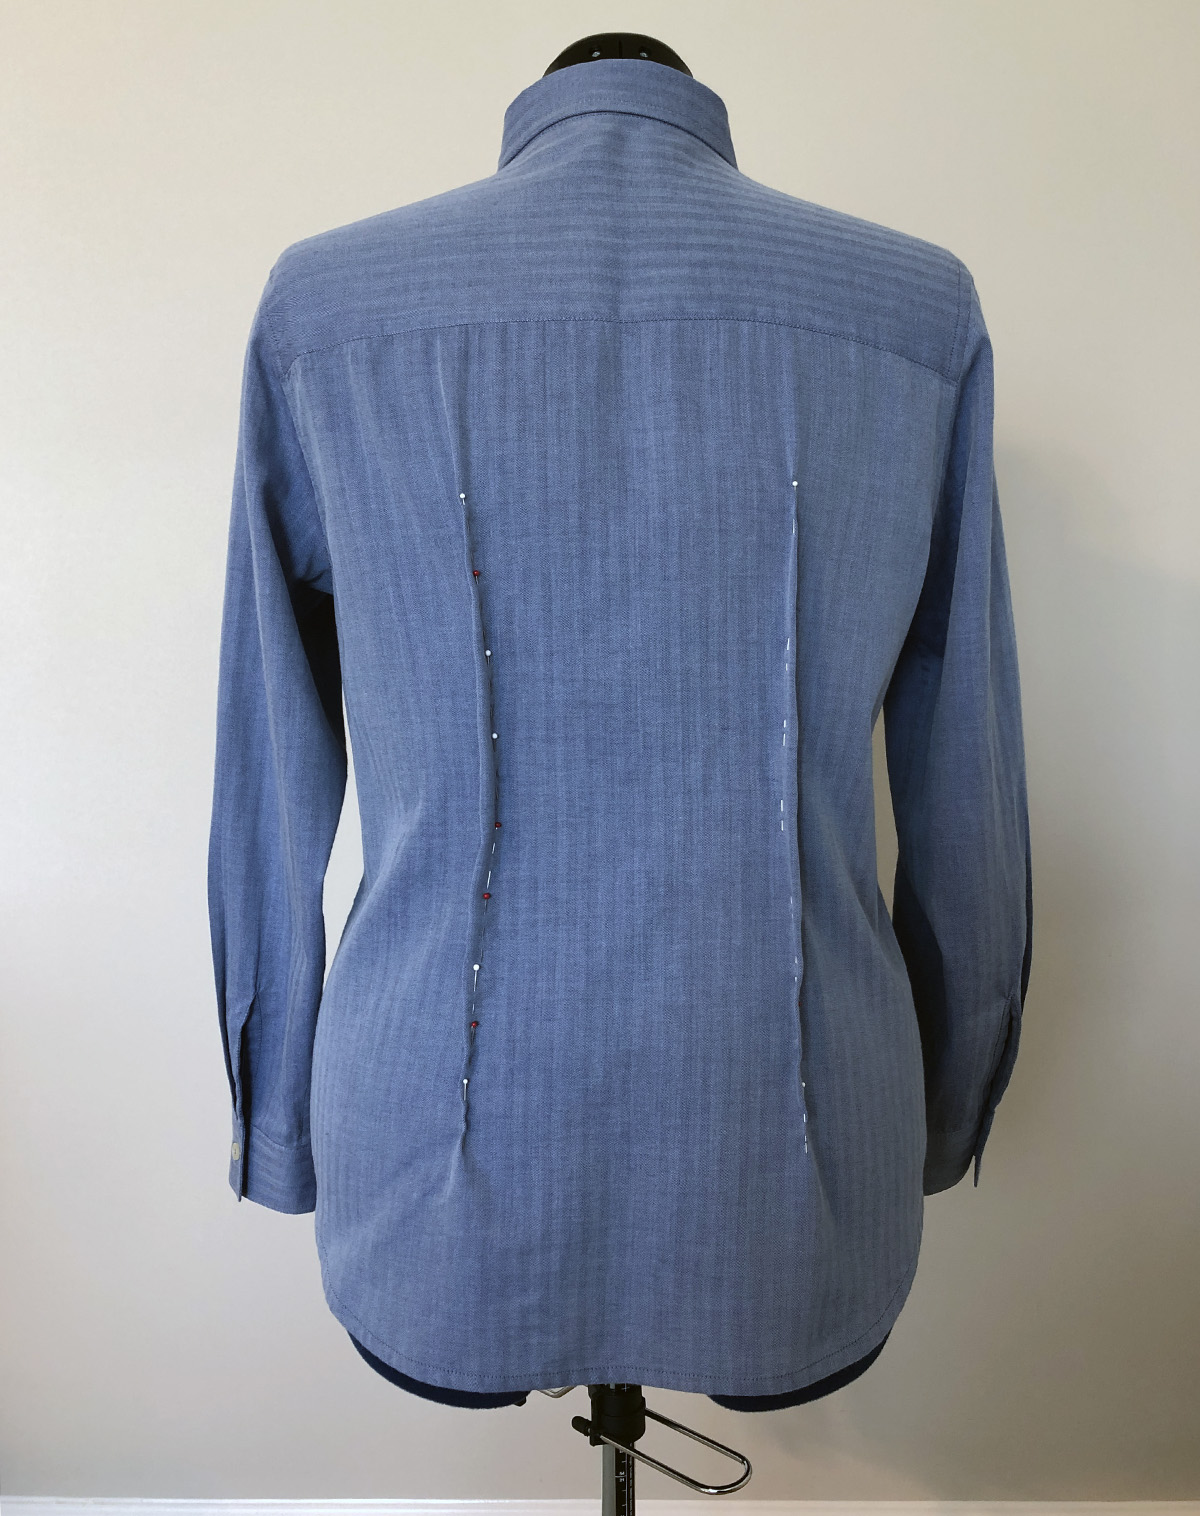 Back of blue dress shirt on dress form, with two vertical darts pinned in place